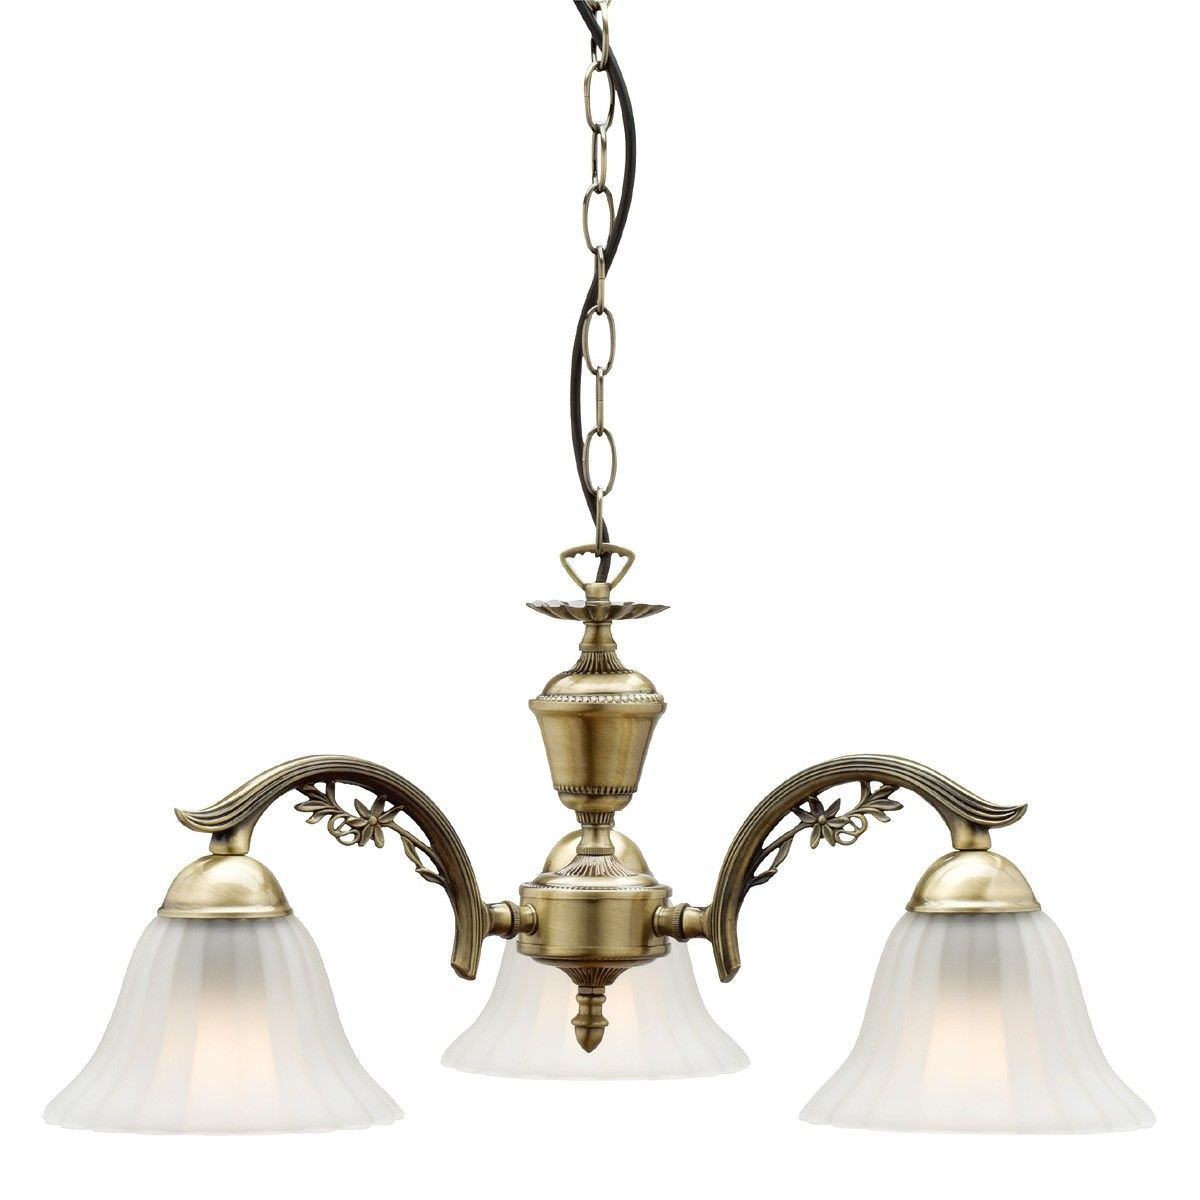 Edgewood 3 Light Chandelier